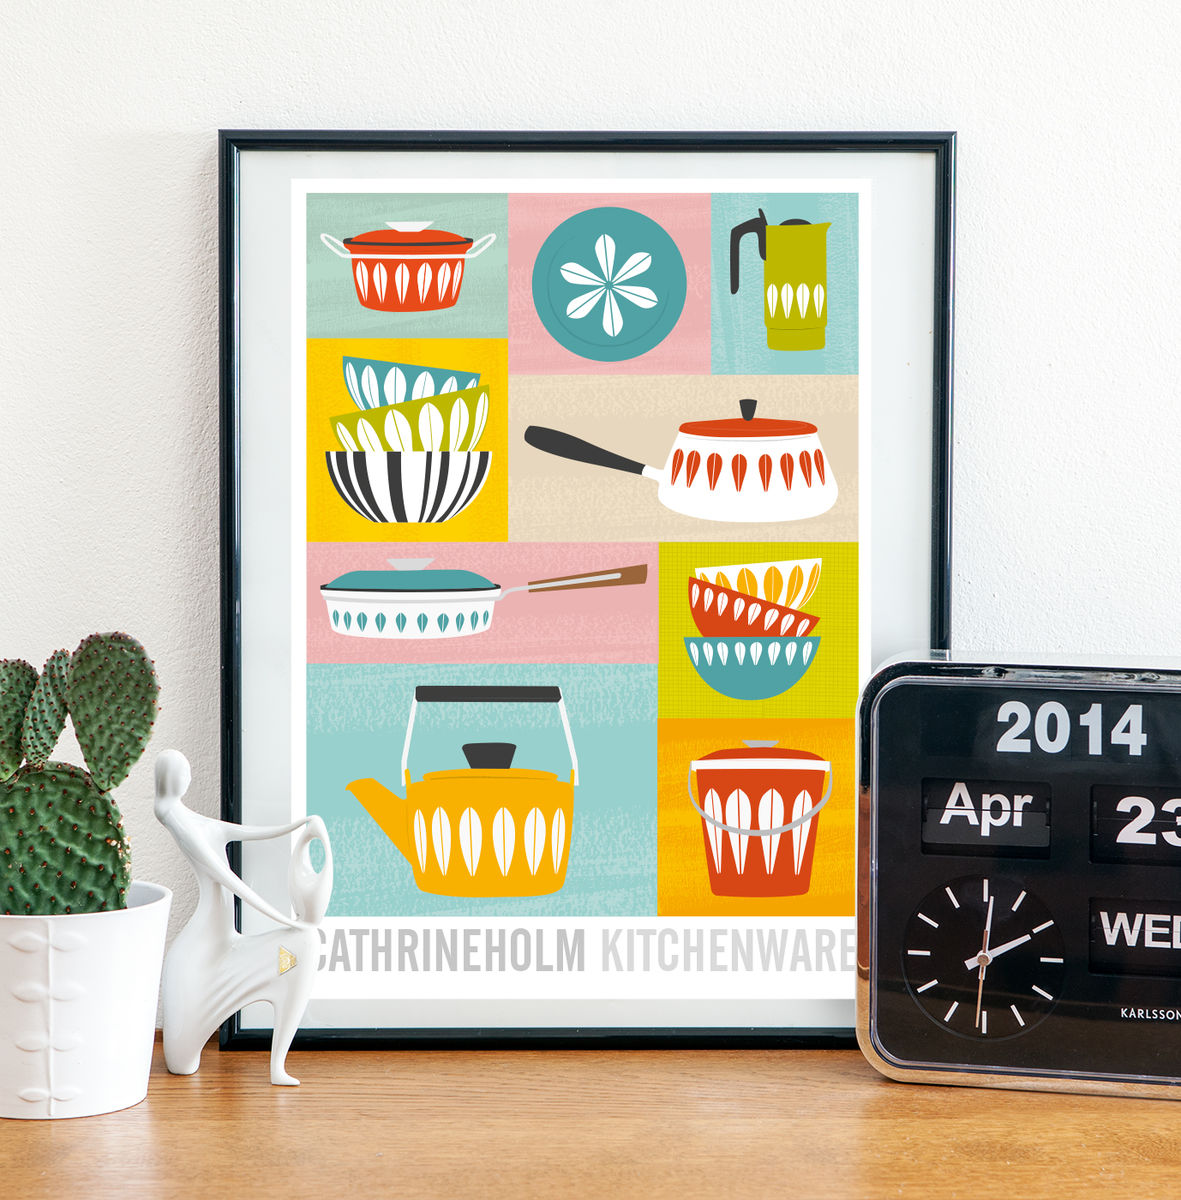 Cathrineholm retro kitchenware print - product images  of